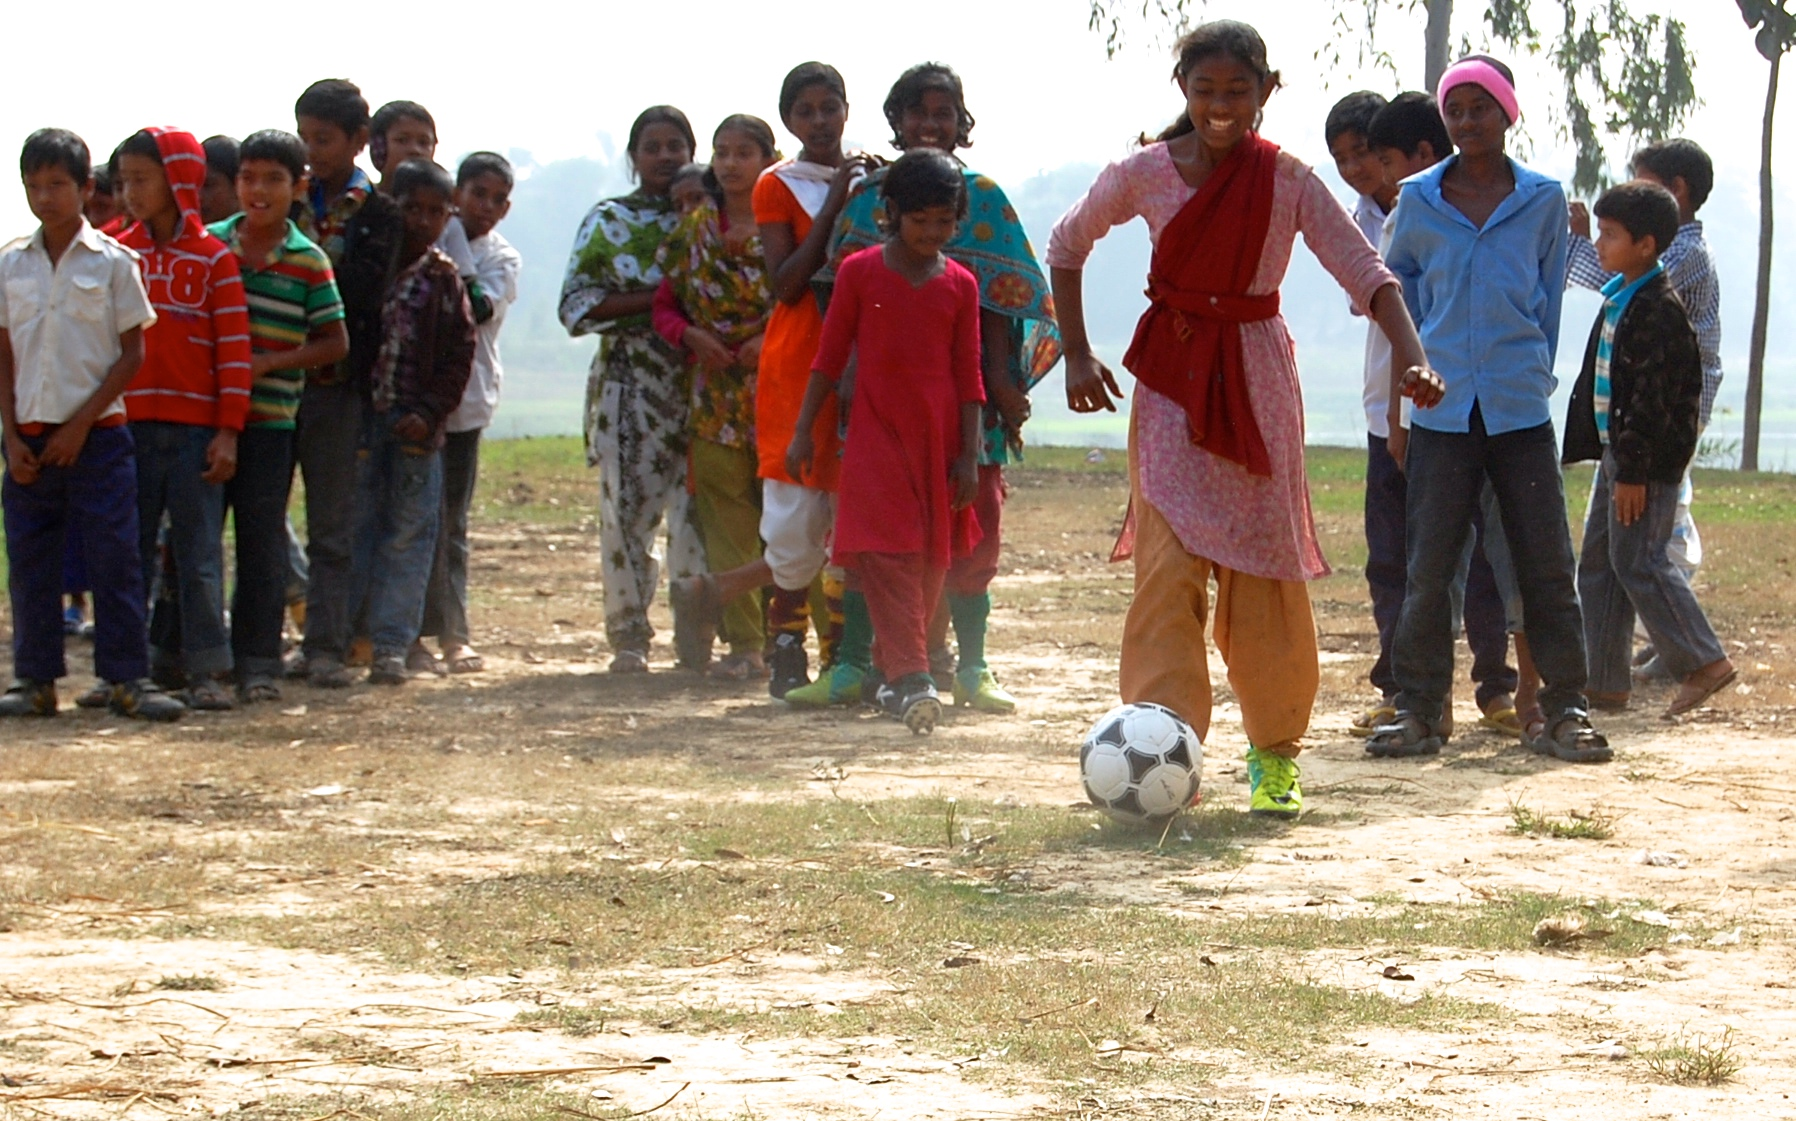 Village girls learning soccer